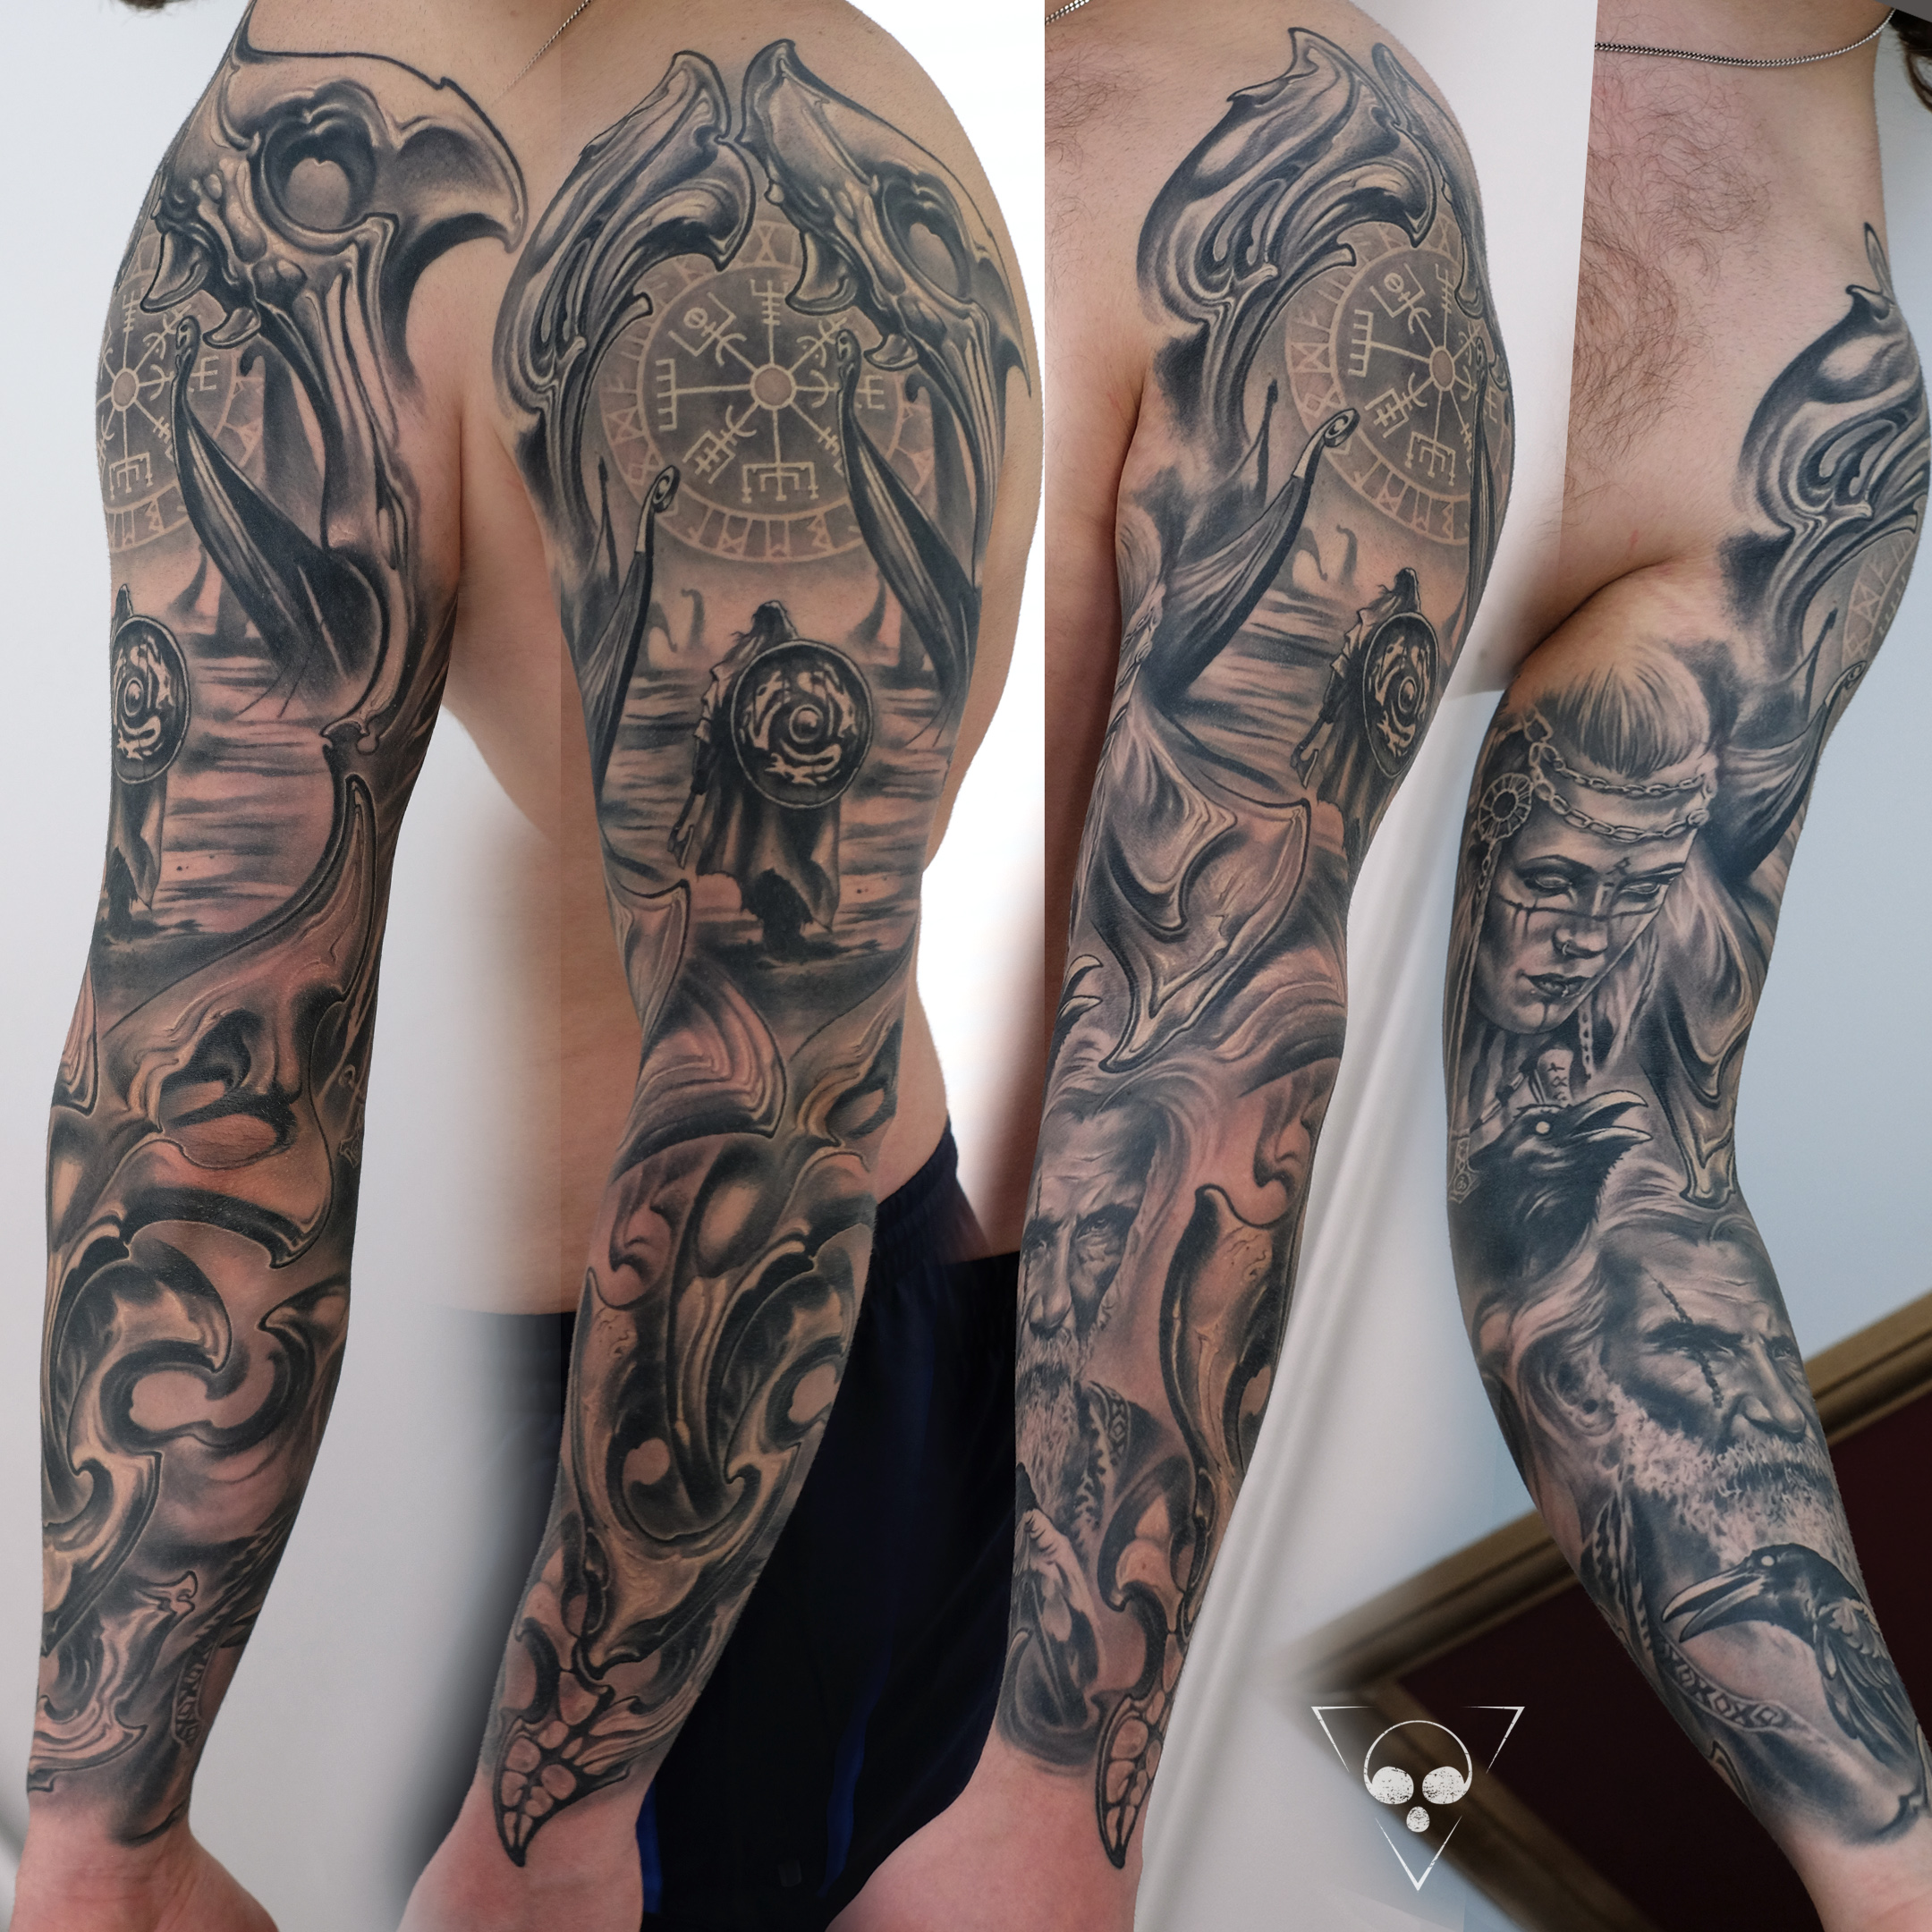 Mythologie tattoos germanische The Meanings